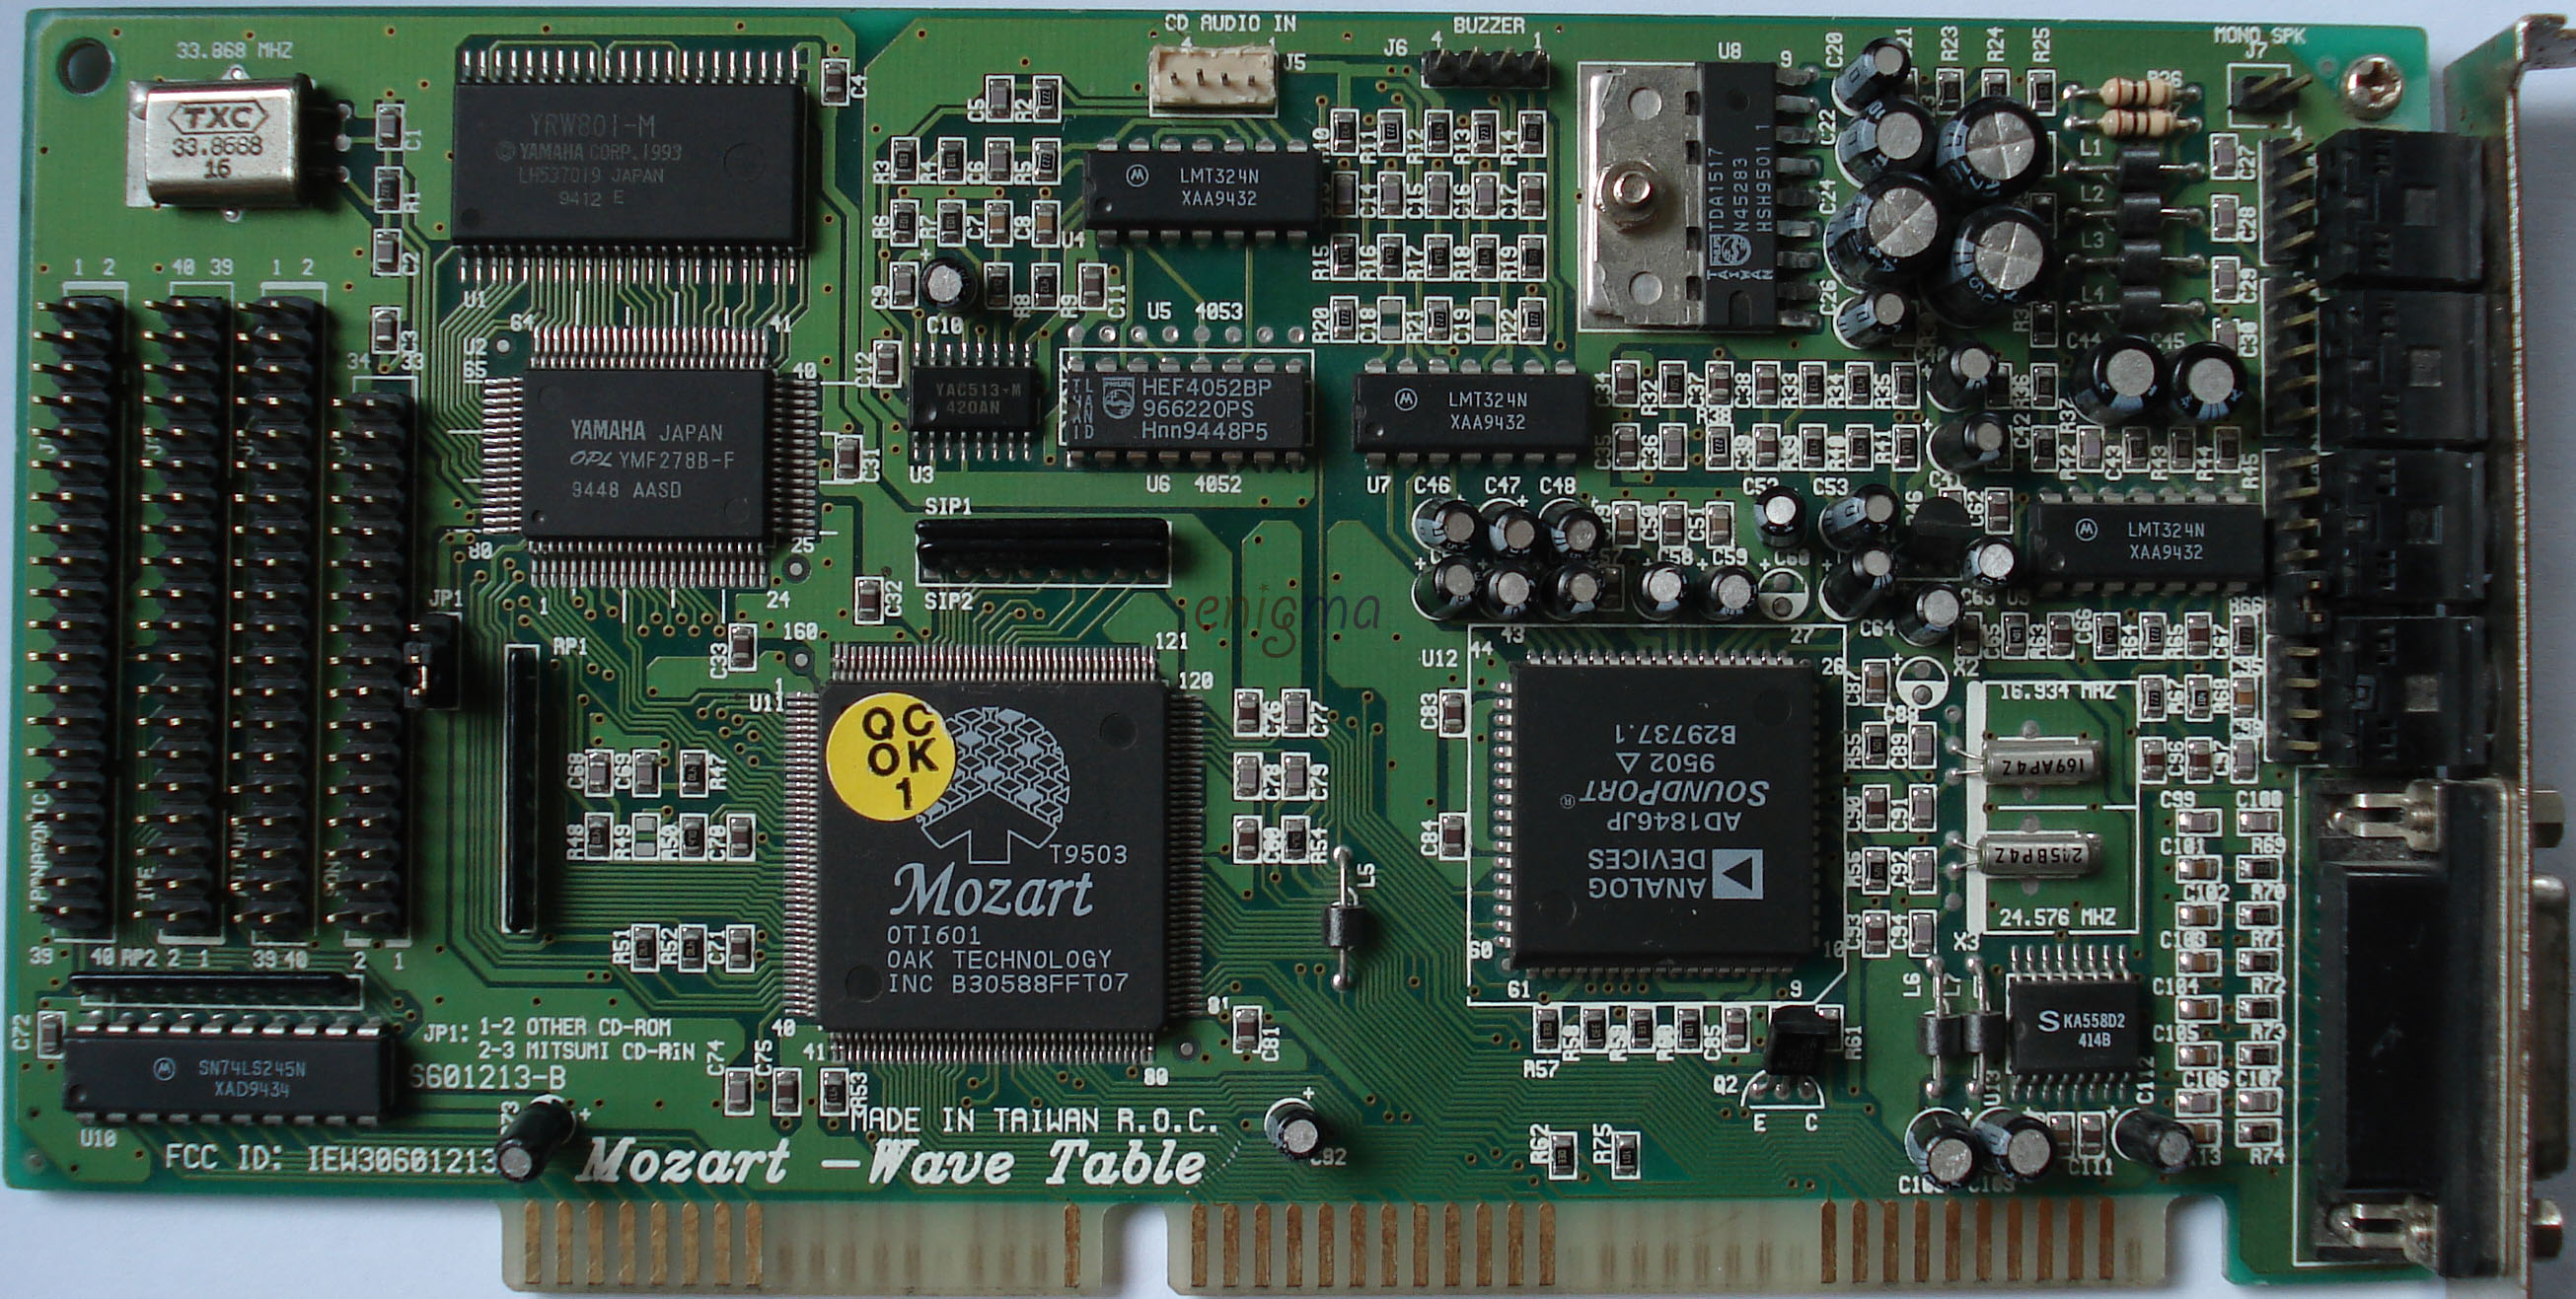 VOGONS • View topic - Graphics card choice for 486 DX4-100